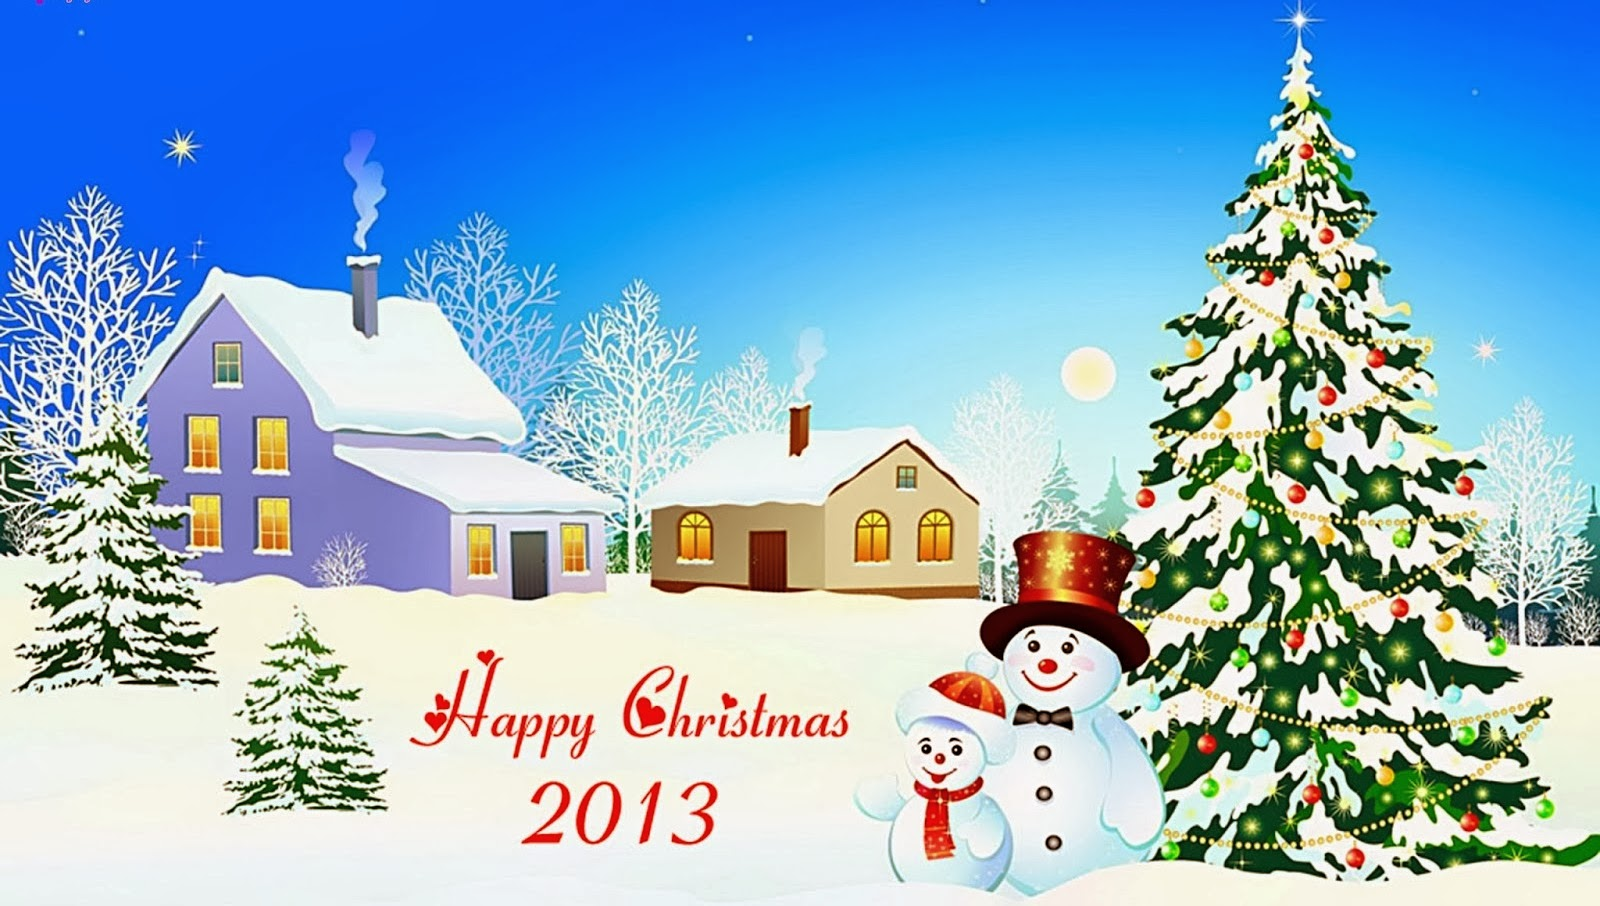 Merry Christmas Happy New Year 2014.5 Send Free New Years Greeting Cards 2014